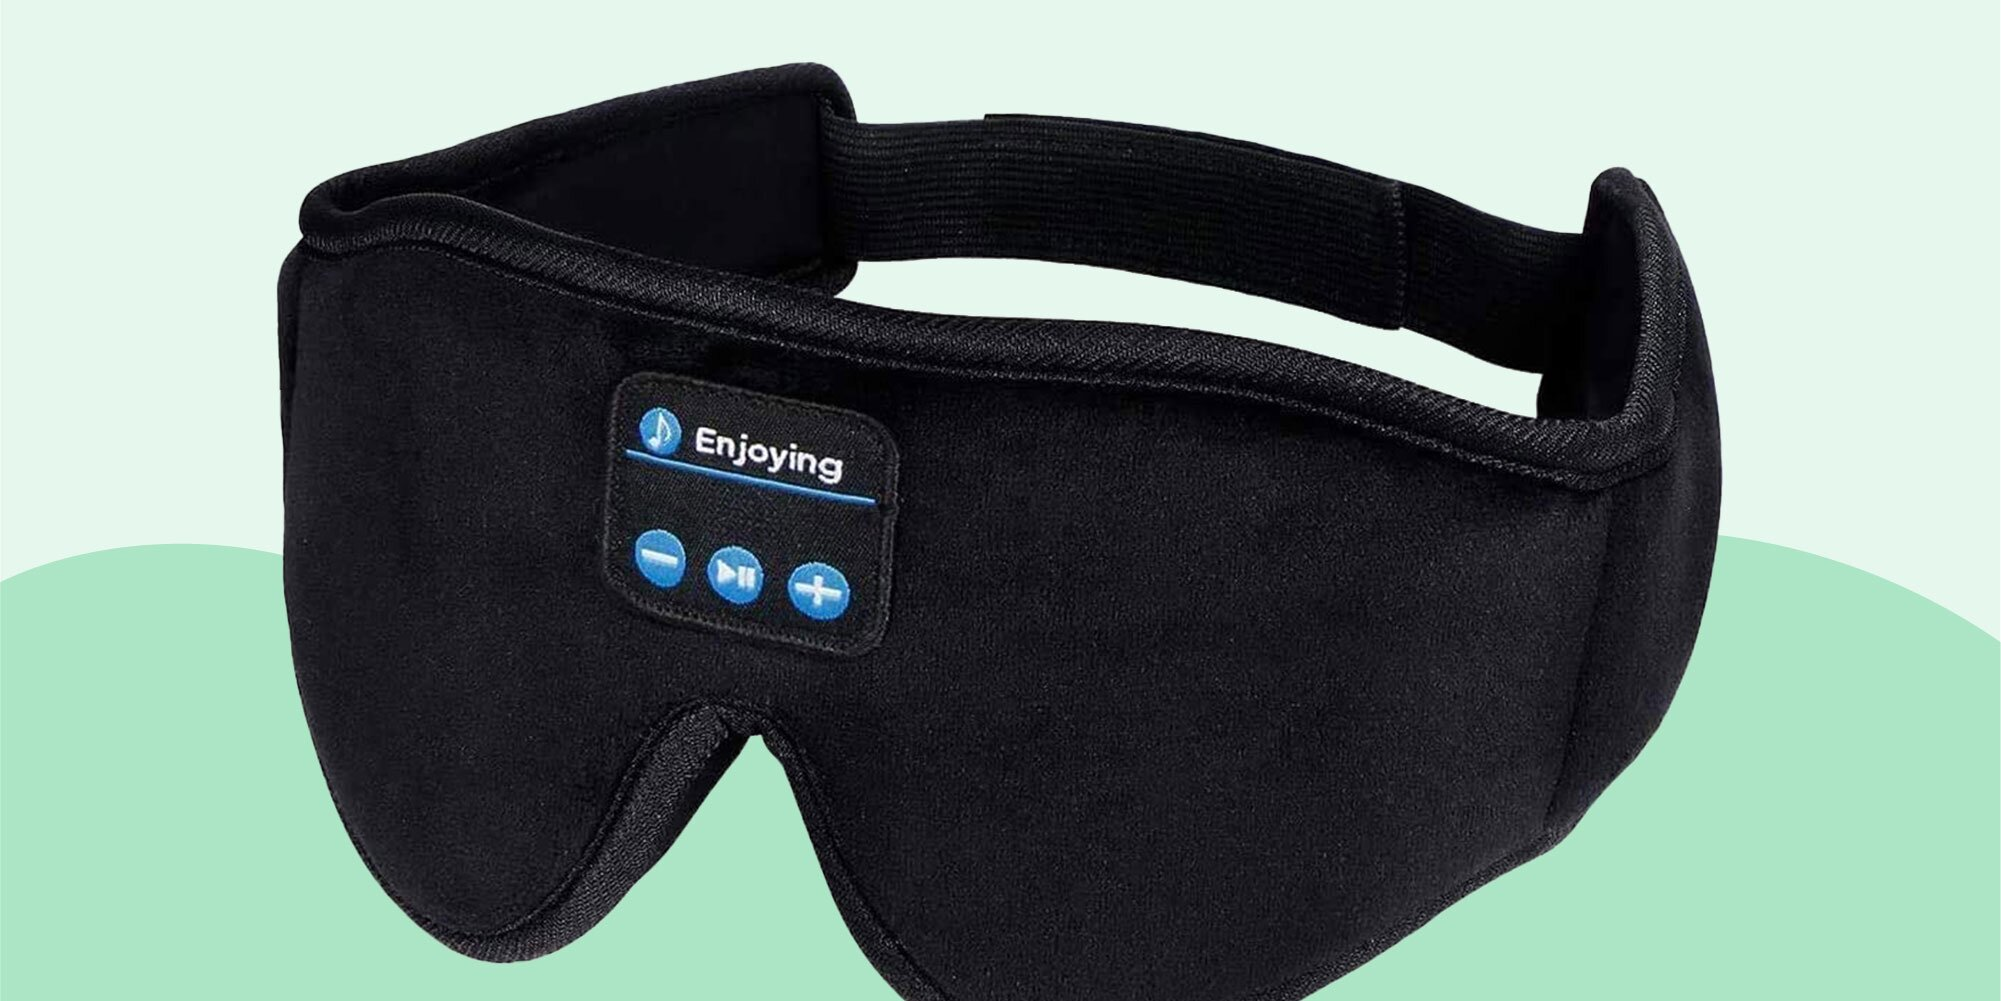 If You Can't Fall Asleep Without Music, You Need This Eye Mask for Side Sleepers